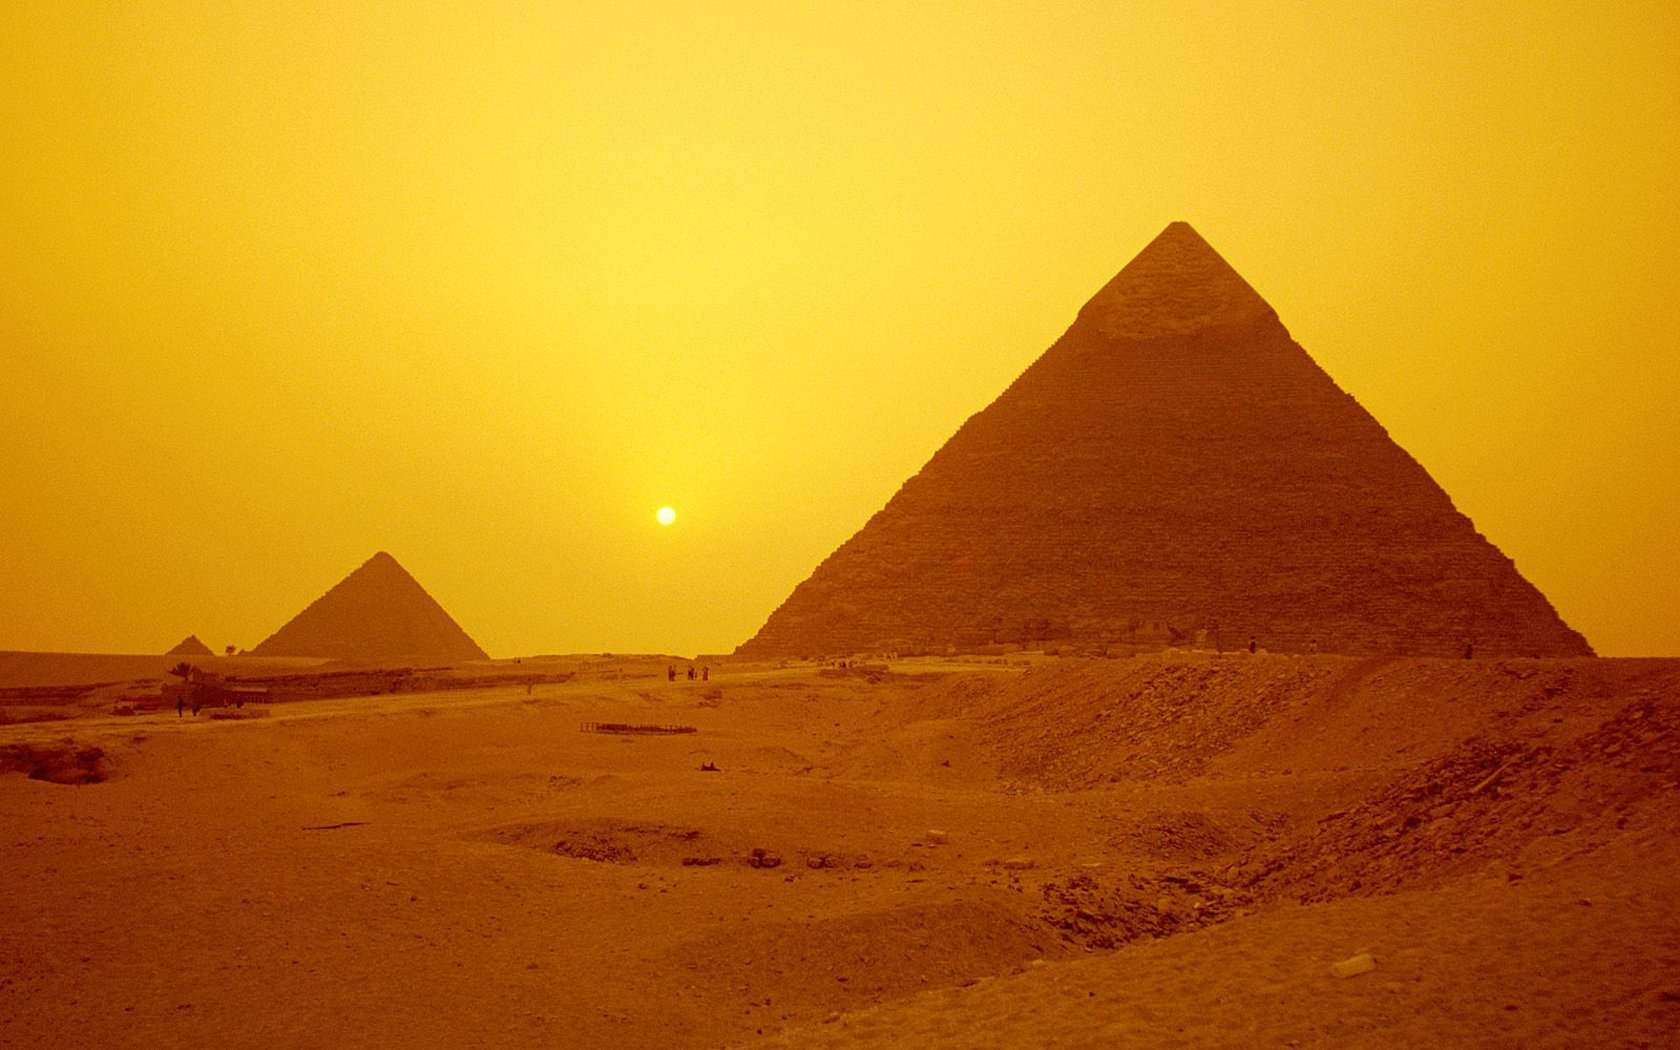 Pyramids Giza Egypt Backgrounds For PowerPoint   Miscellaneous PPT 1680x1050